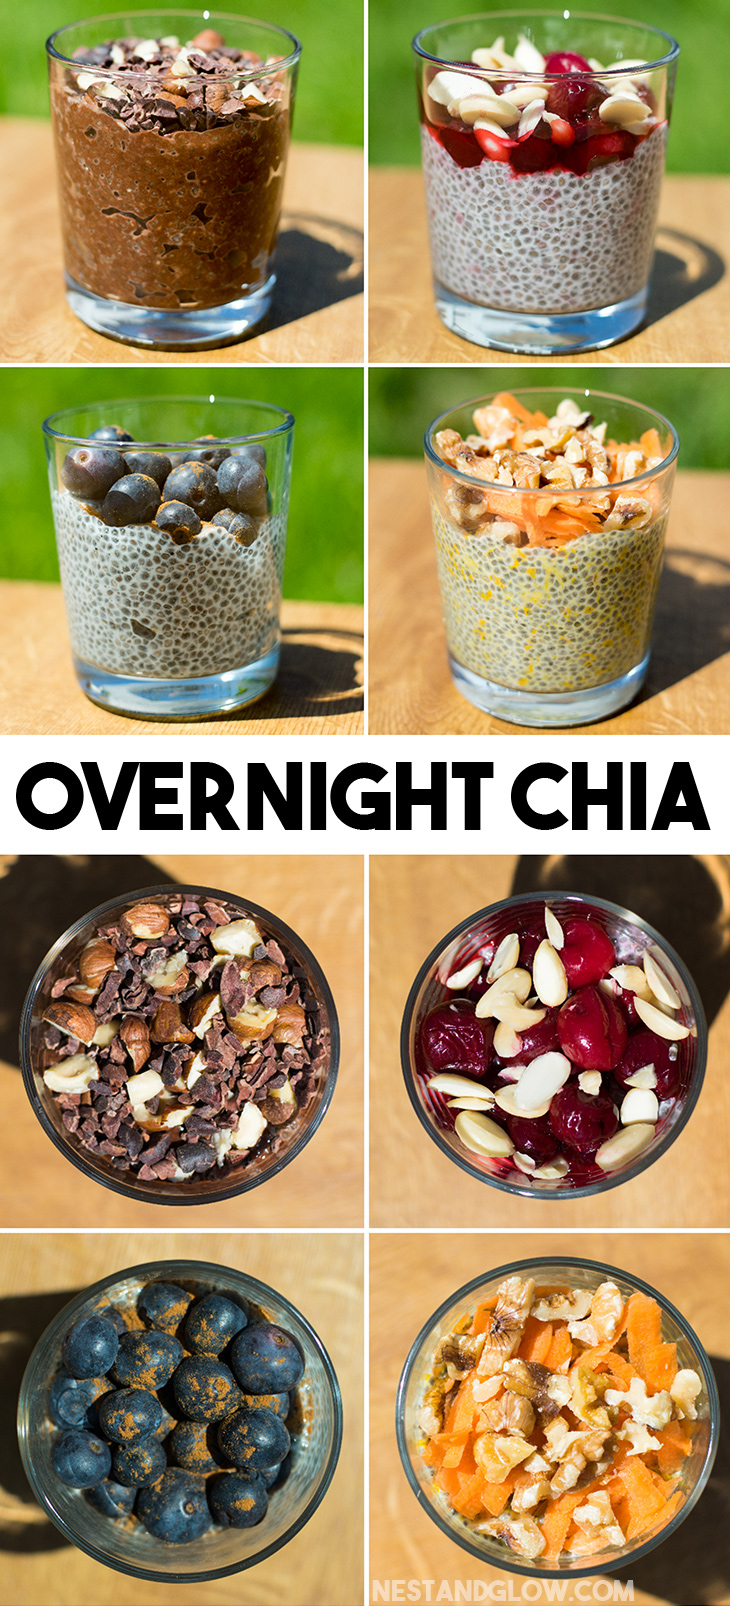 How to Make Overnight Chia Pudding 4 Ways